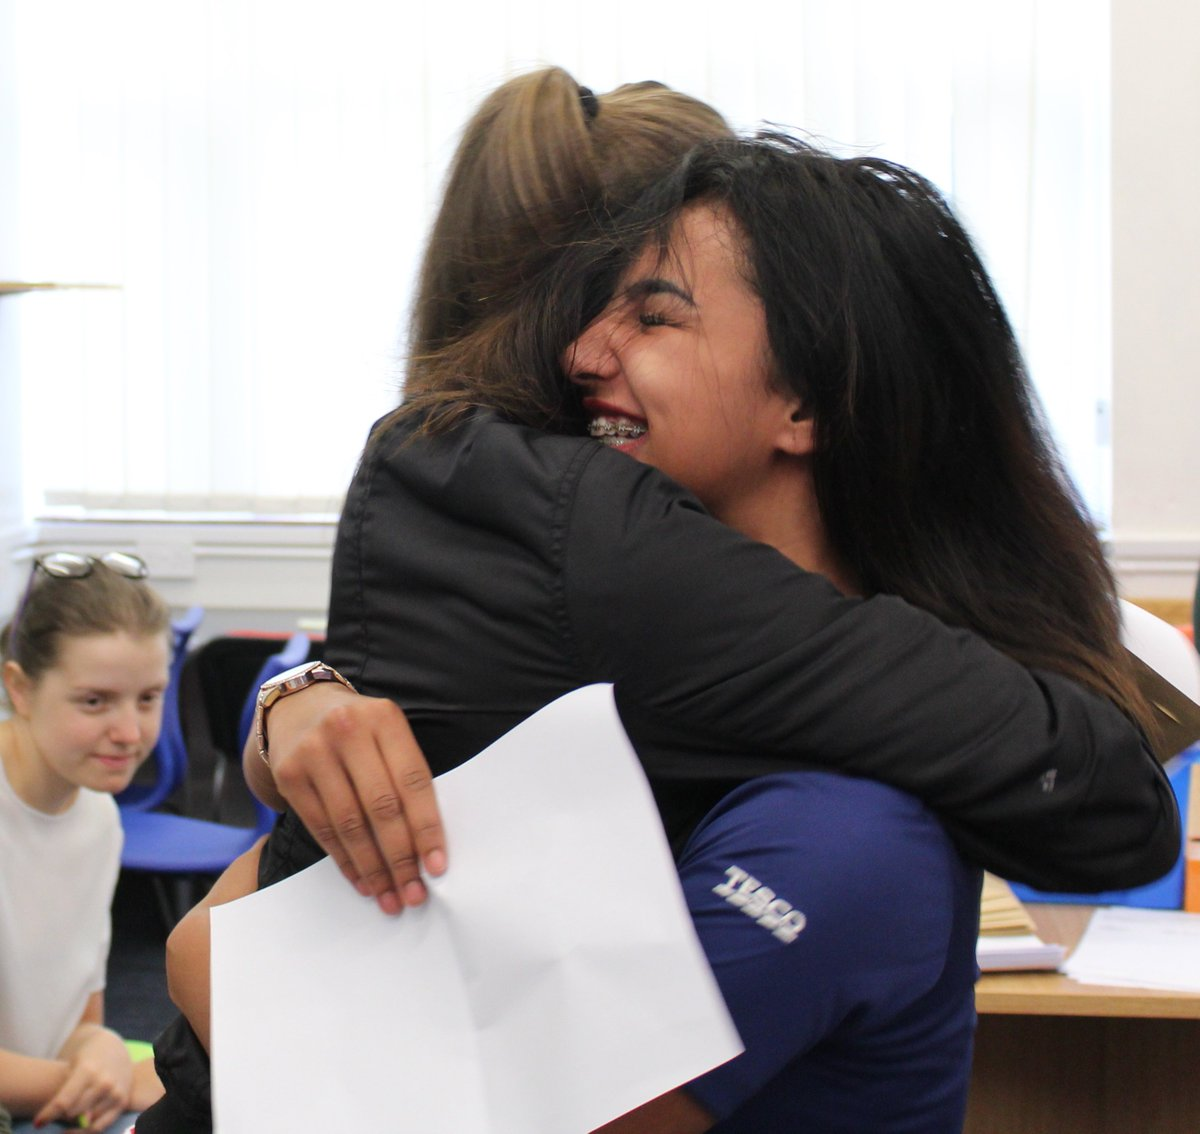 Celebrating our best ever #alevelresults with 35% achieving A*/A and 62% achieving A*-B grades in year 13! #proud